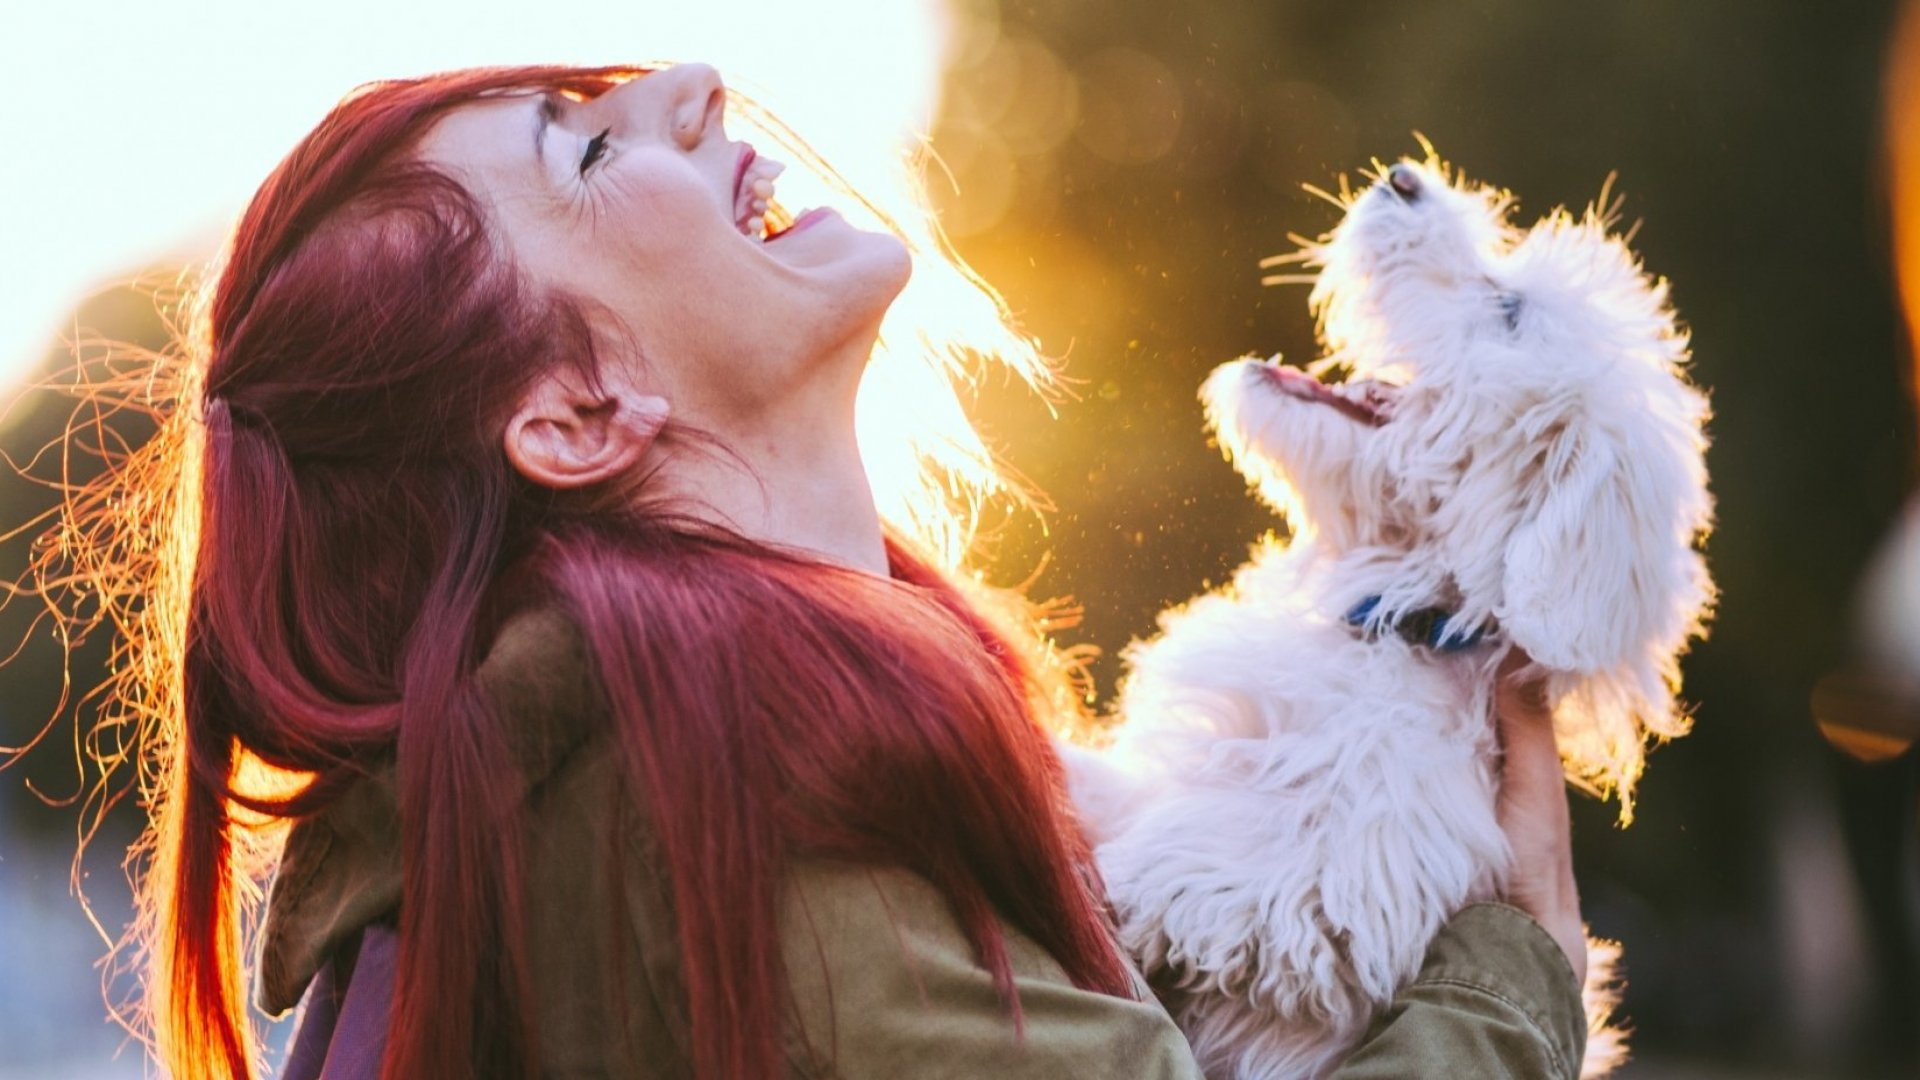 5 Hard-to-Believe Yet Scientifically Proven Benefits of Owning a Dog